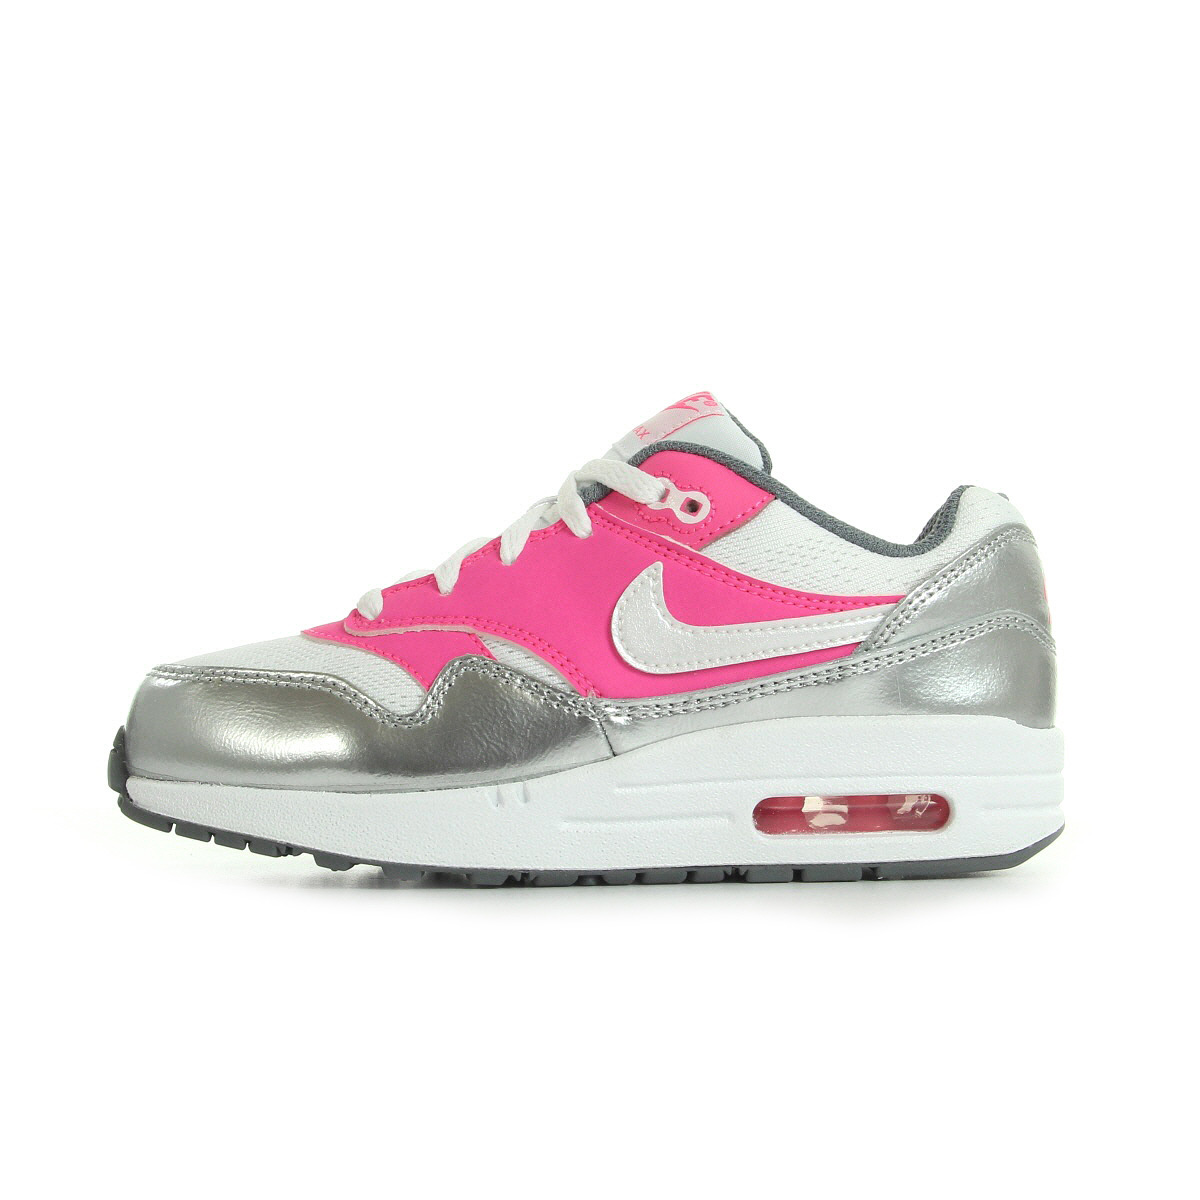 nike air max one rose fluo nike dunk info. Black Bedroom Furniture Sets. Home Design Ideas